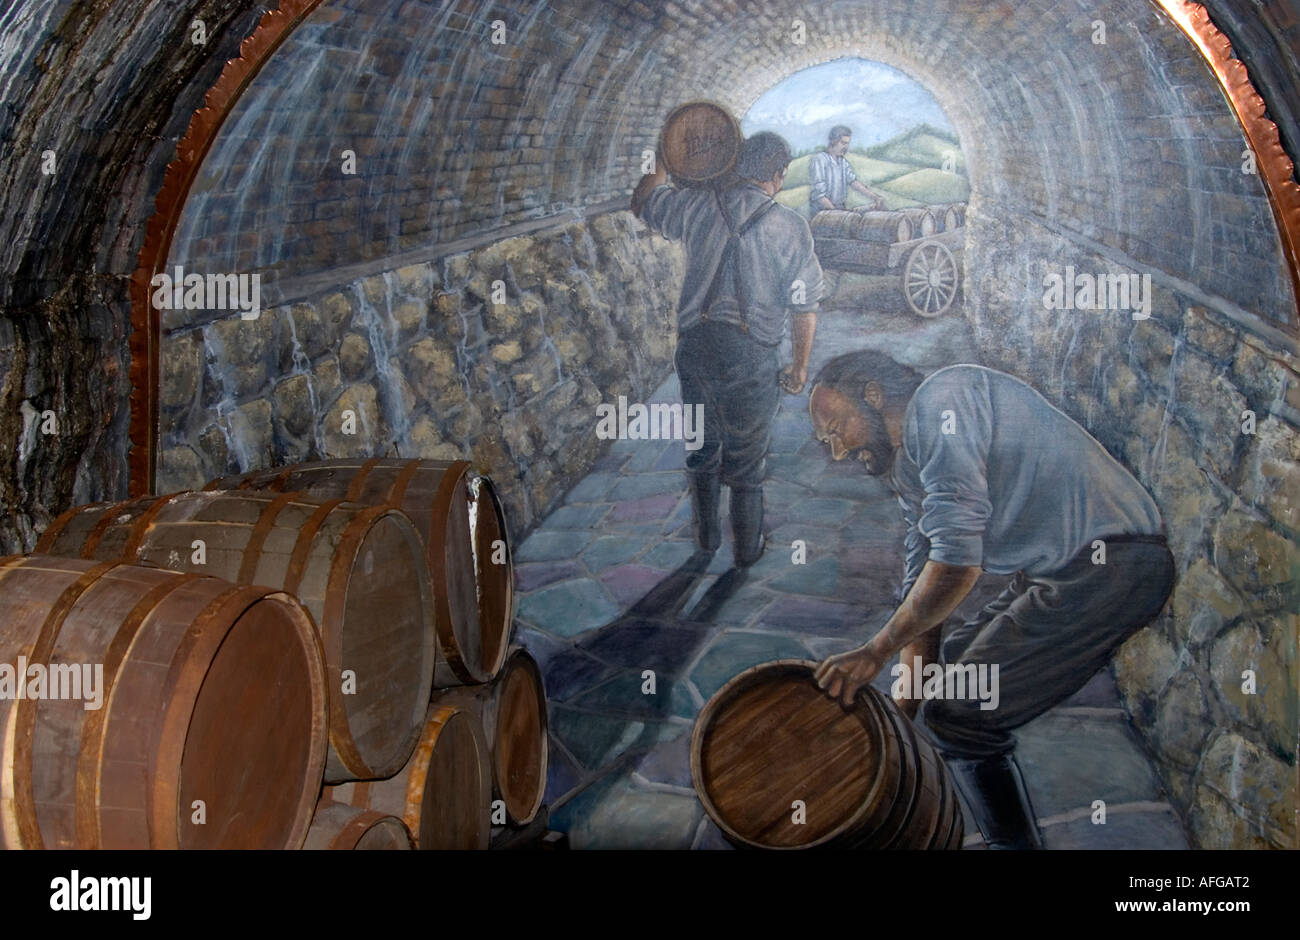 Miller Brewery Wall Mural depicting cold storage cave. & Miller Brewery Wall Mural depicting cold storage cave Stock Photo ...